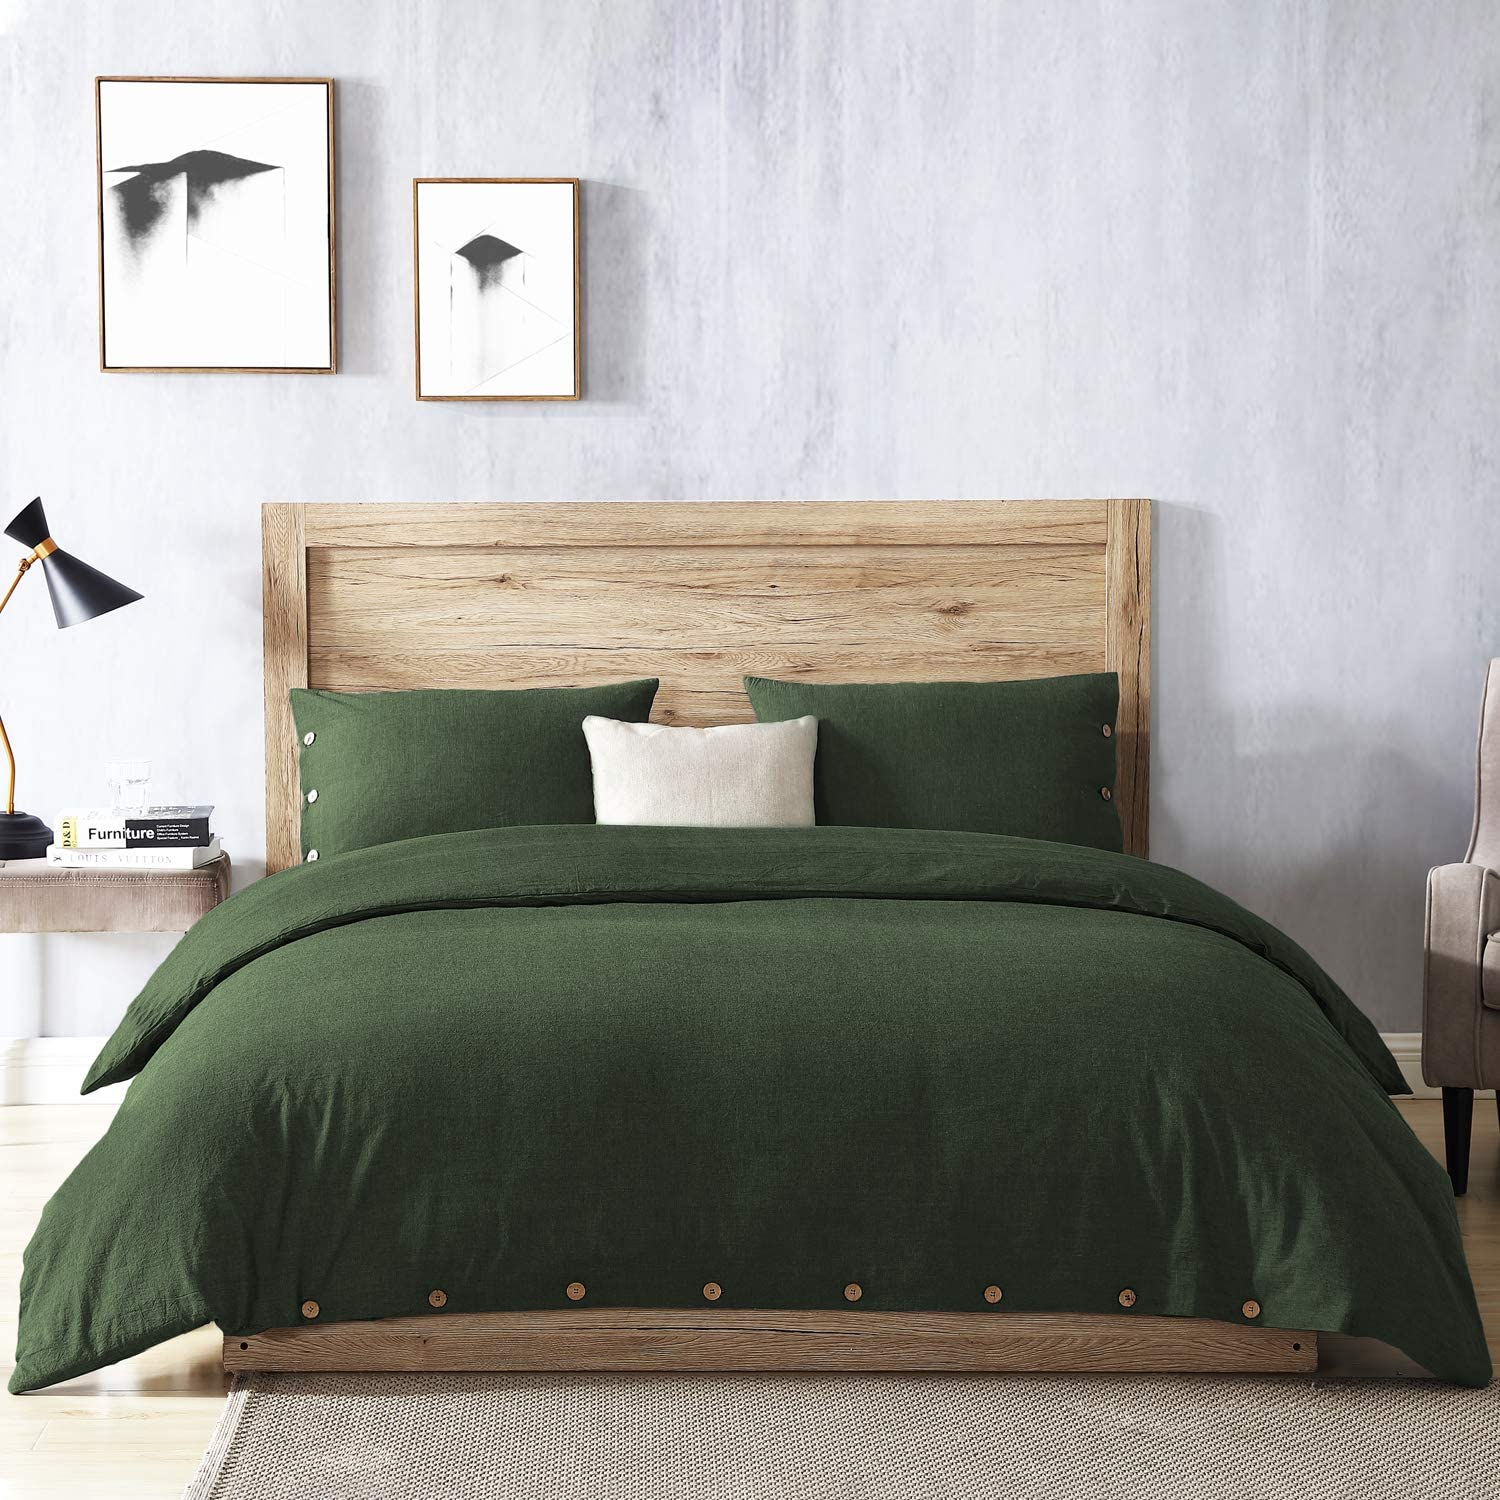 EXQ Home 100% Washed Cotton Olivinie Green Duvet Cover Set King Size 3 Pcs, Super Soft Bedding Vintage Comforter Cover with Button Closure (Breathable)